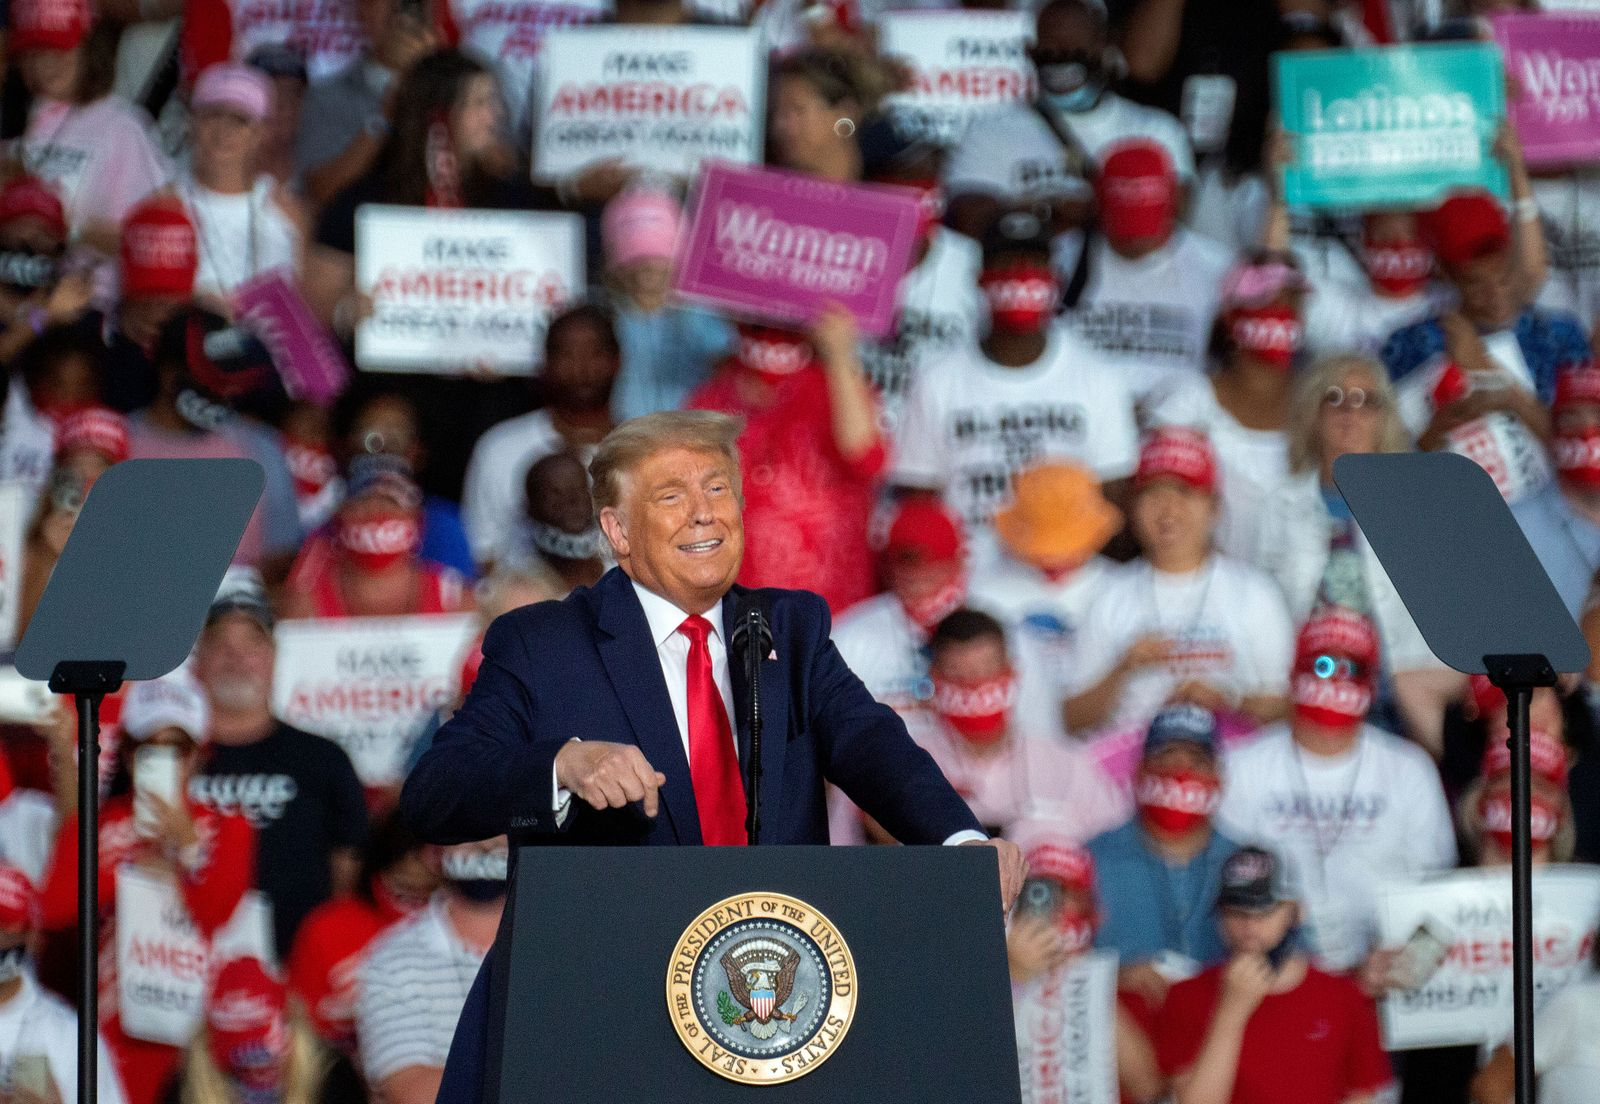 US President Trump's campaign event in Florida, Sanford, USA - 12 Oct 2020